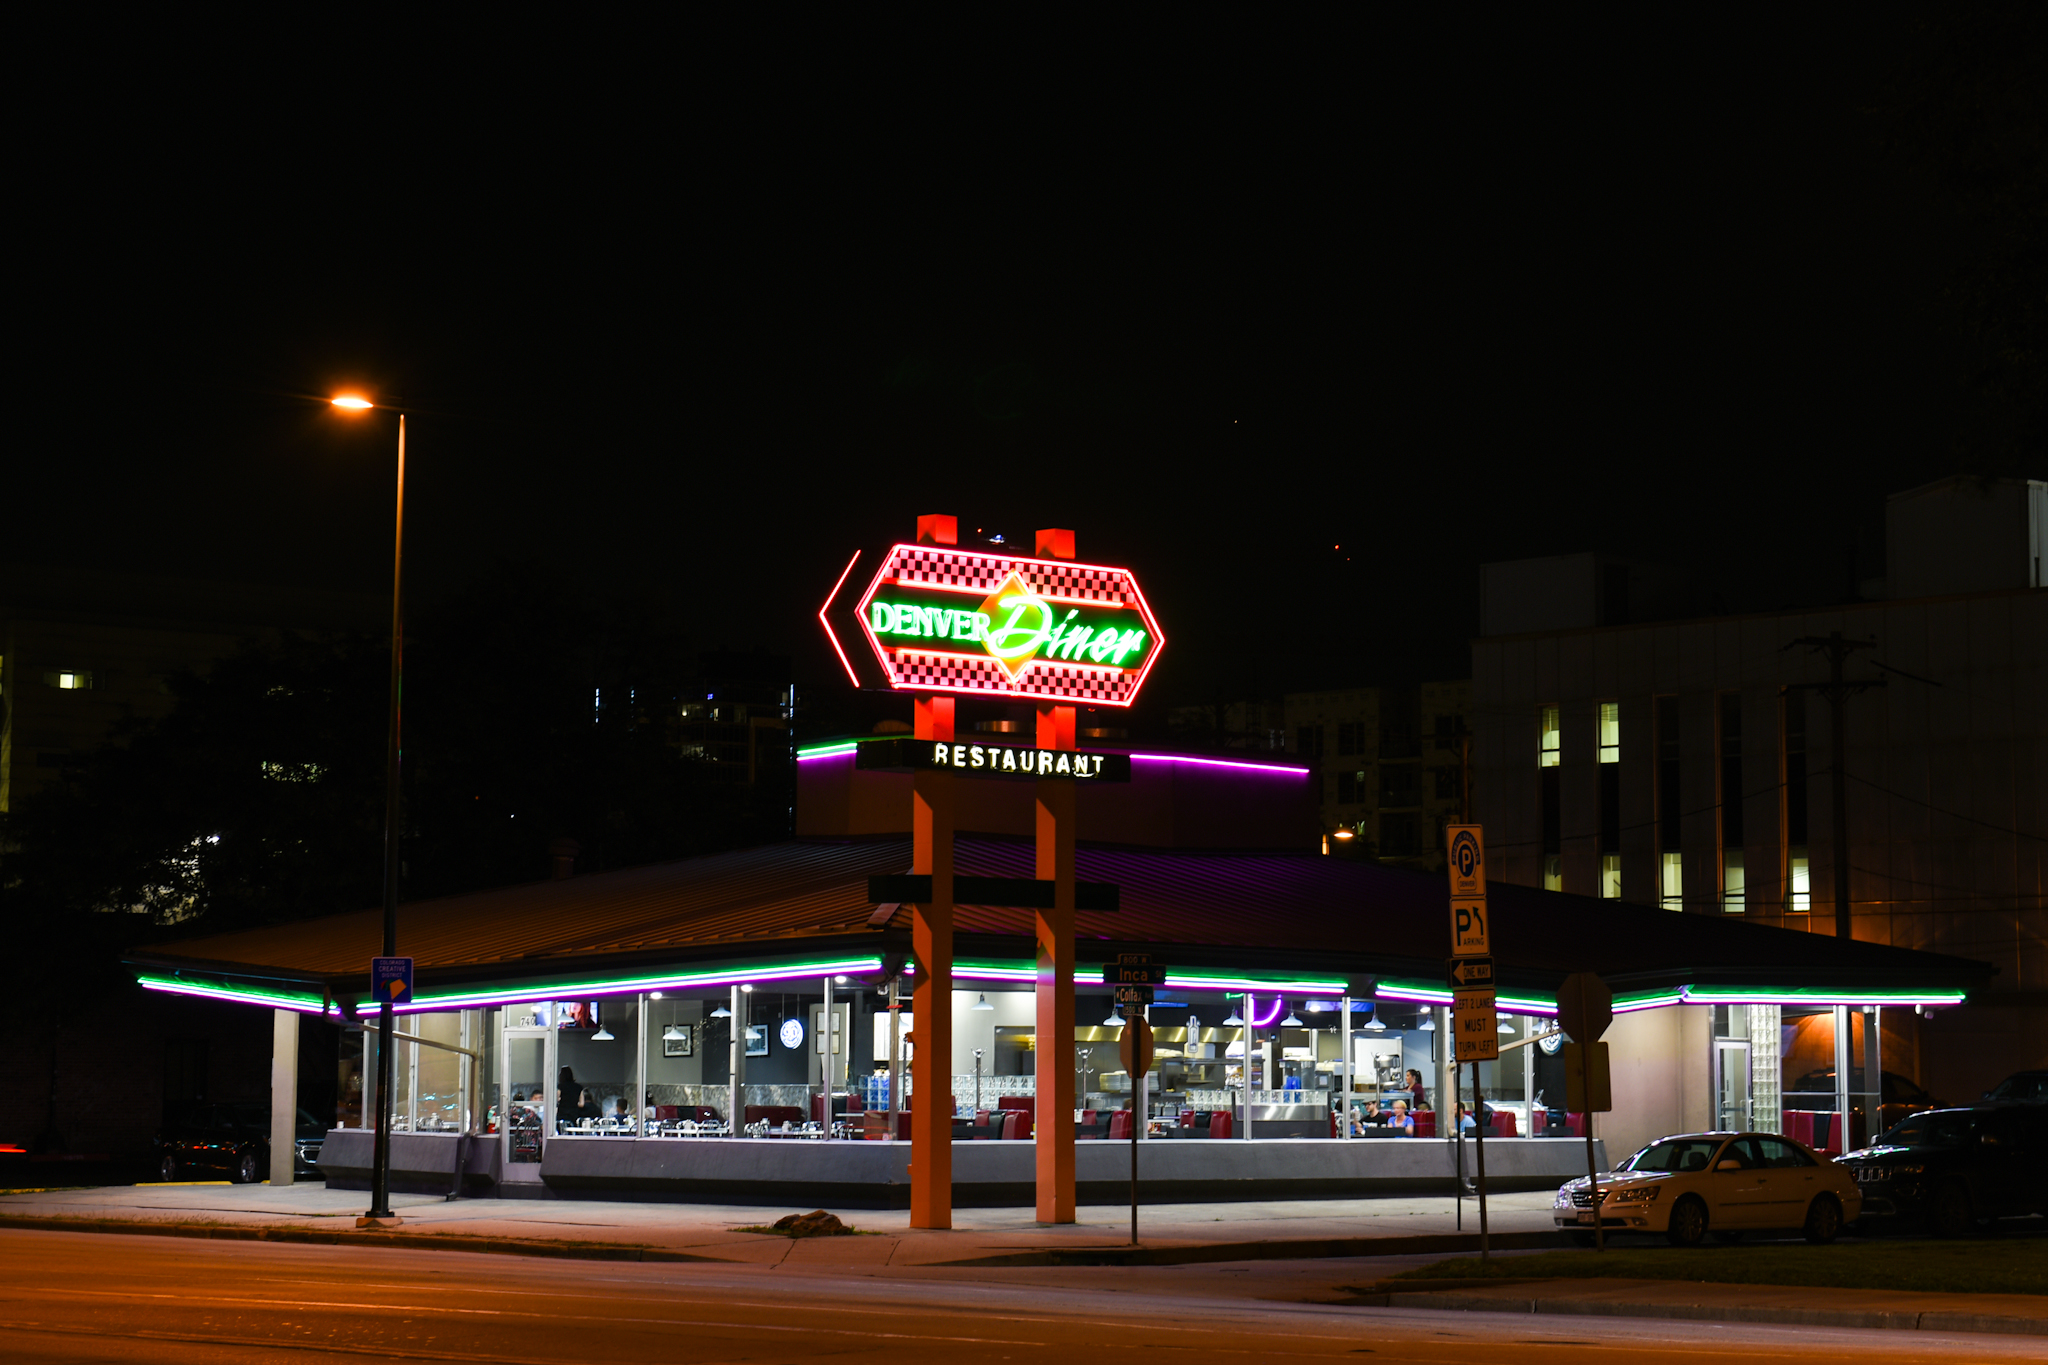 9 p.m.: Purple, green and pink neon lights shine from 740 West Colfax Avenue.